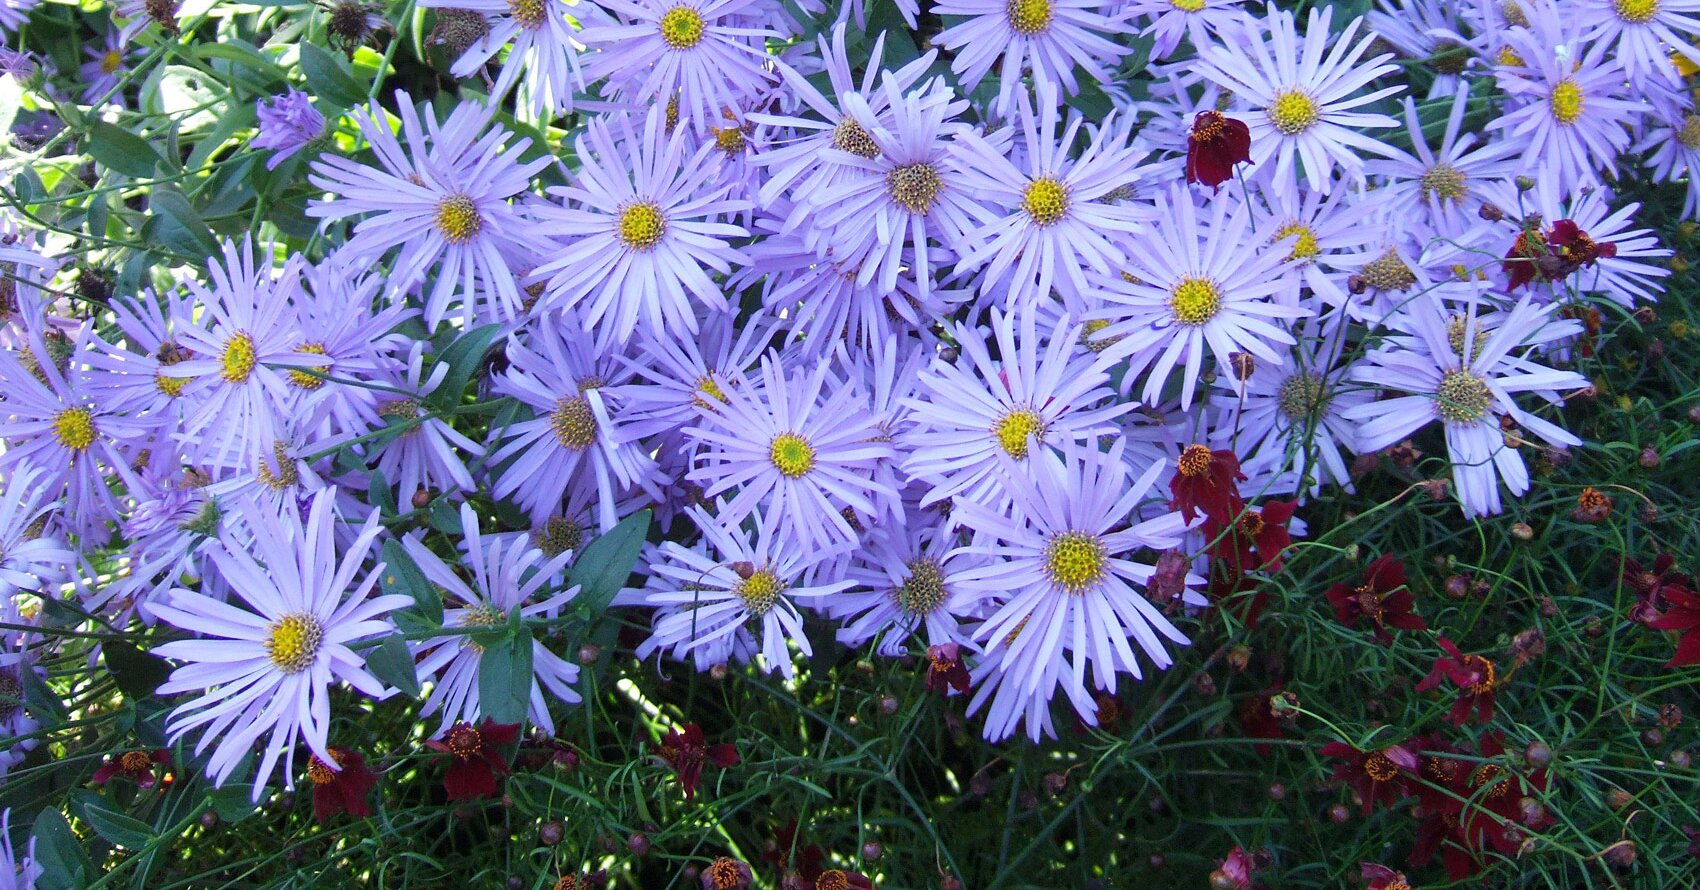 8 Fall-Blooming Native Plants You'll Love for Adding Late-Season Color to Your Garden